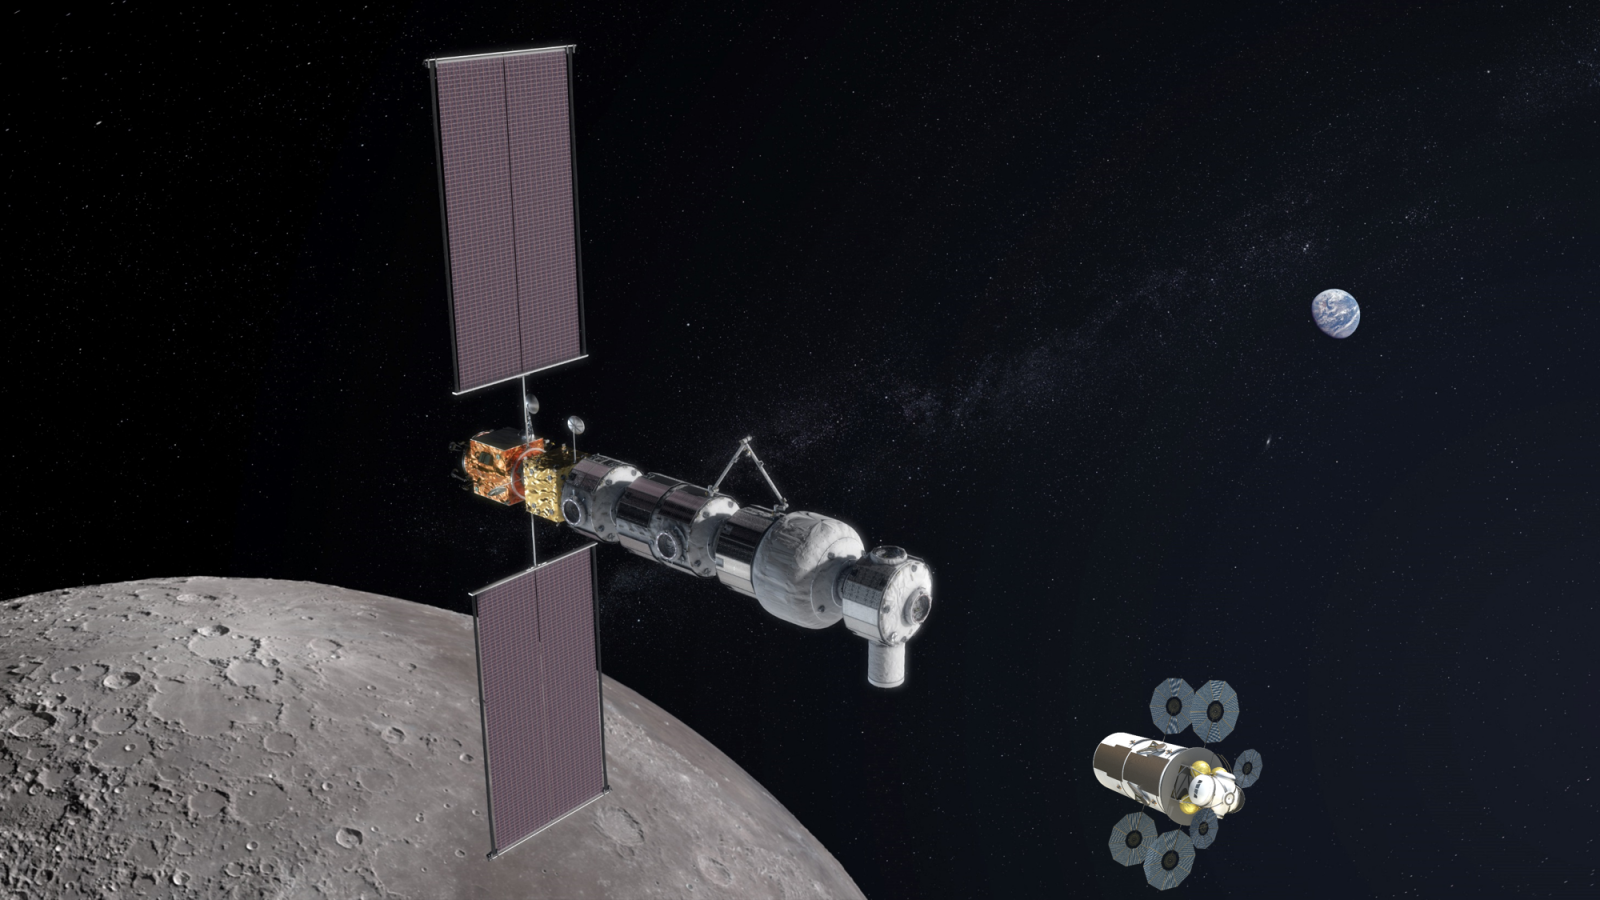 NASA seeks industry help for human lunar landers